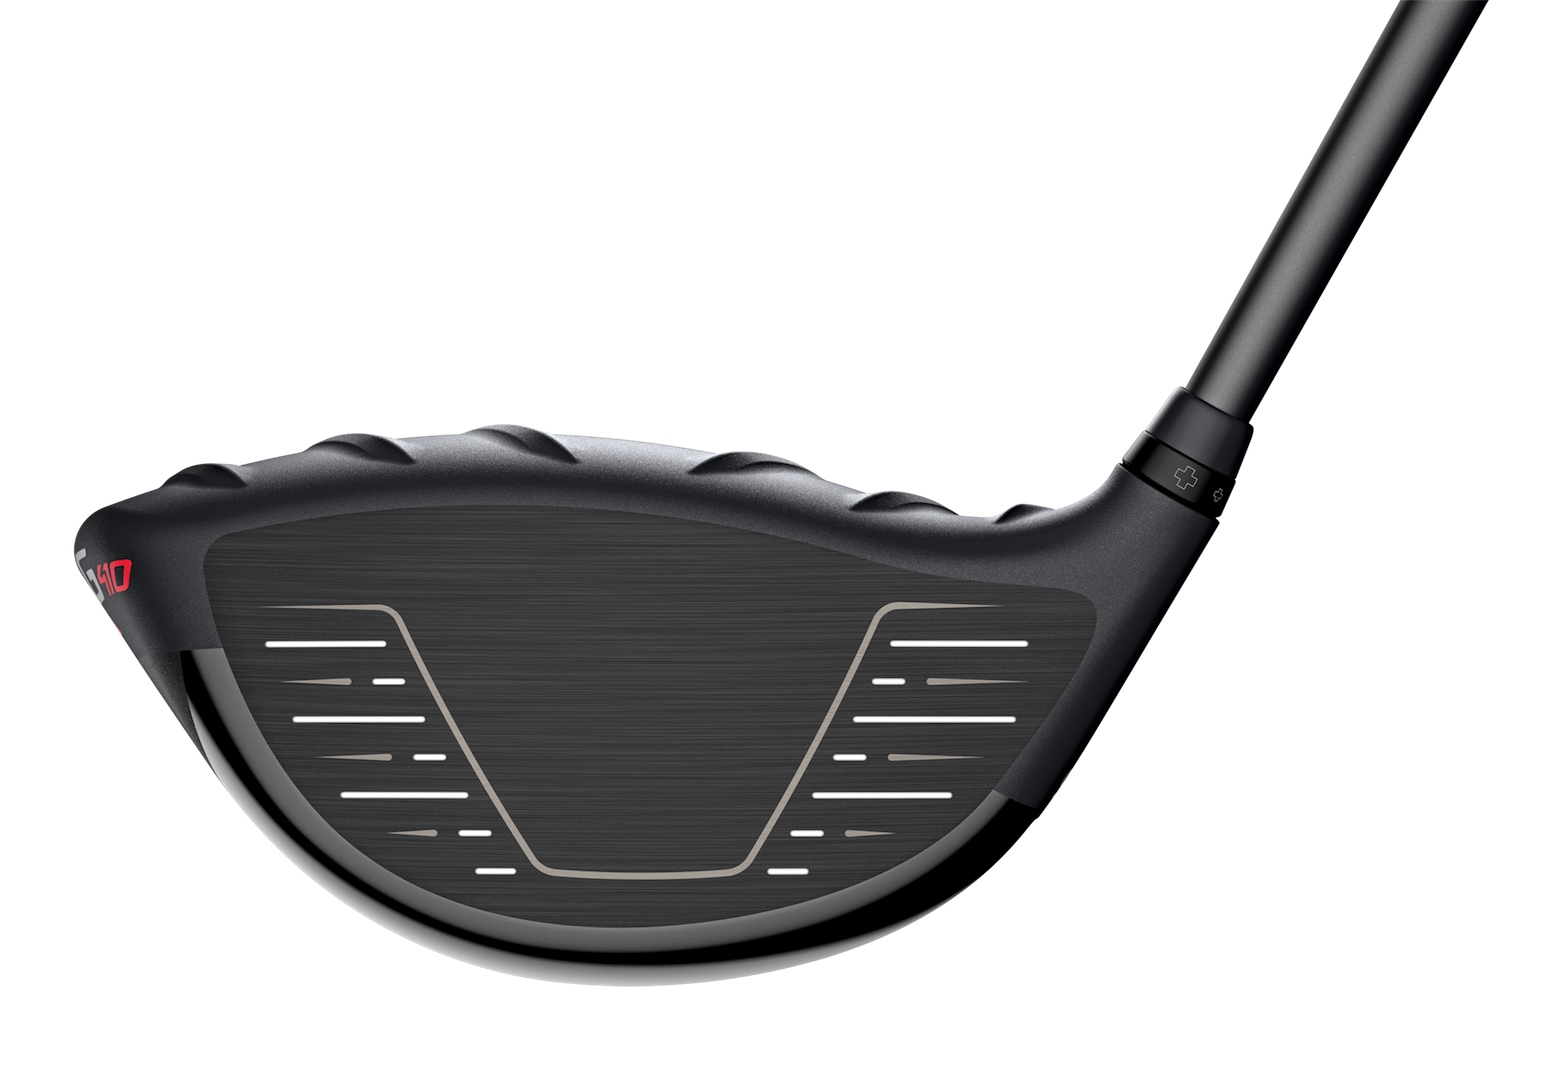 PING reveals awesome new G410 drivers